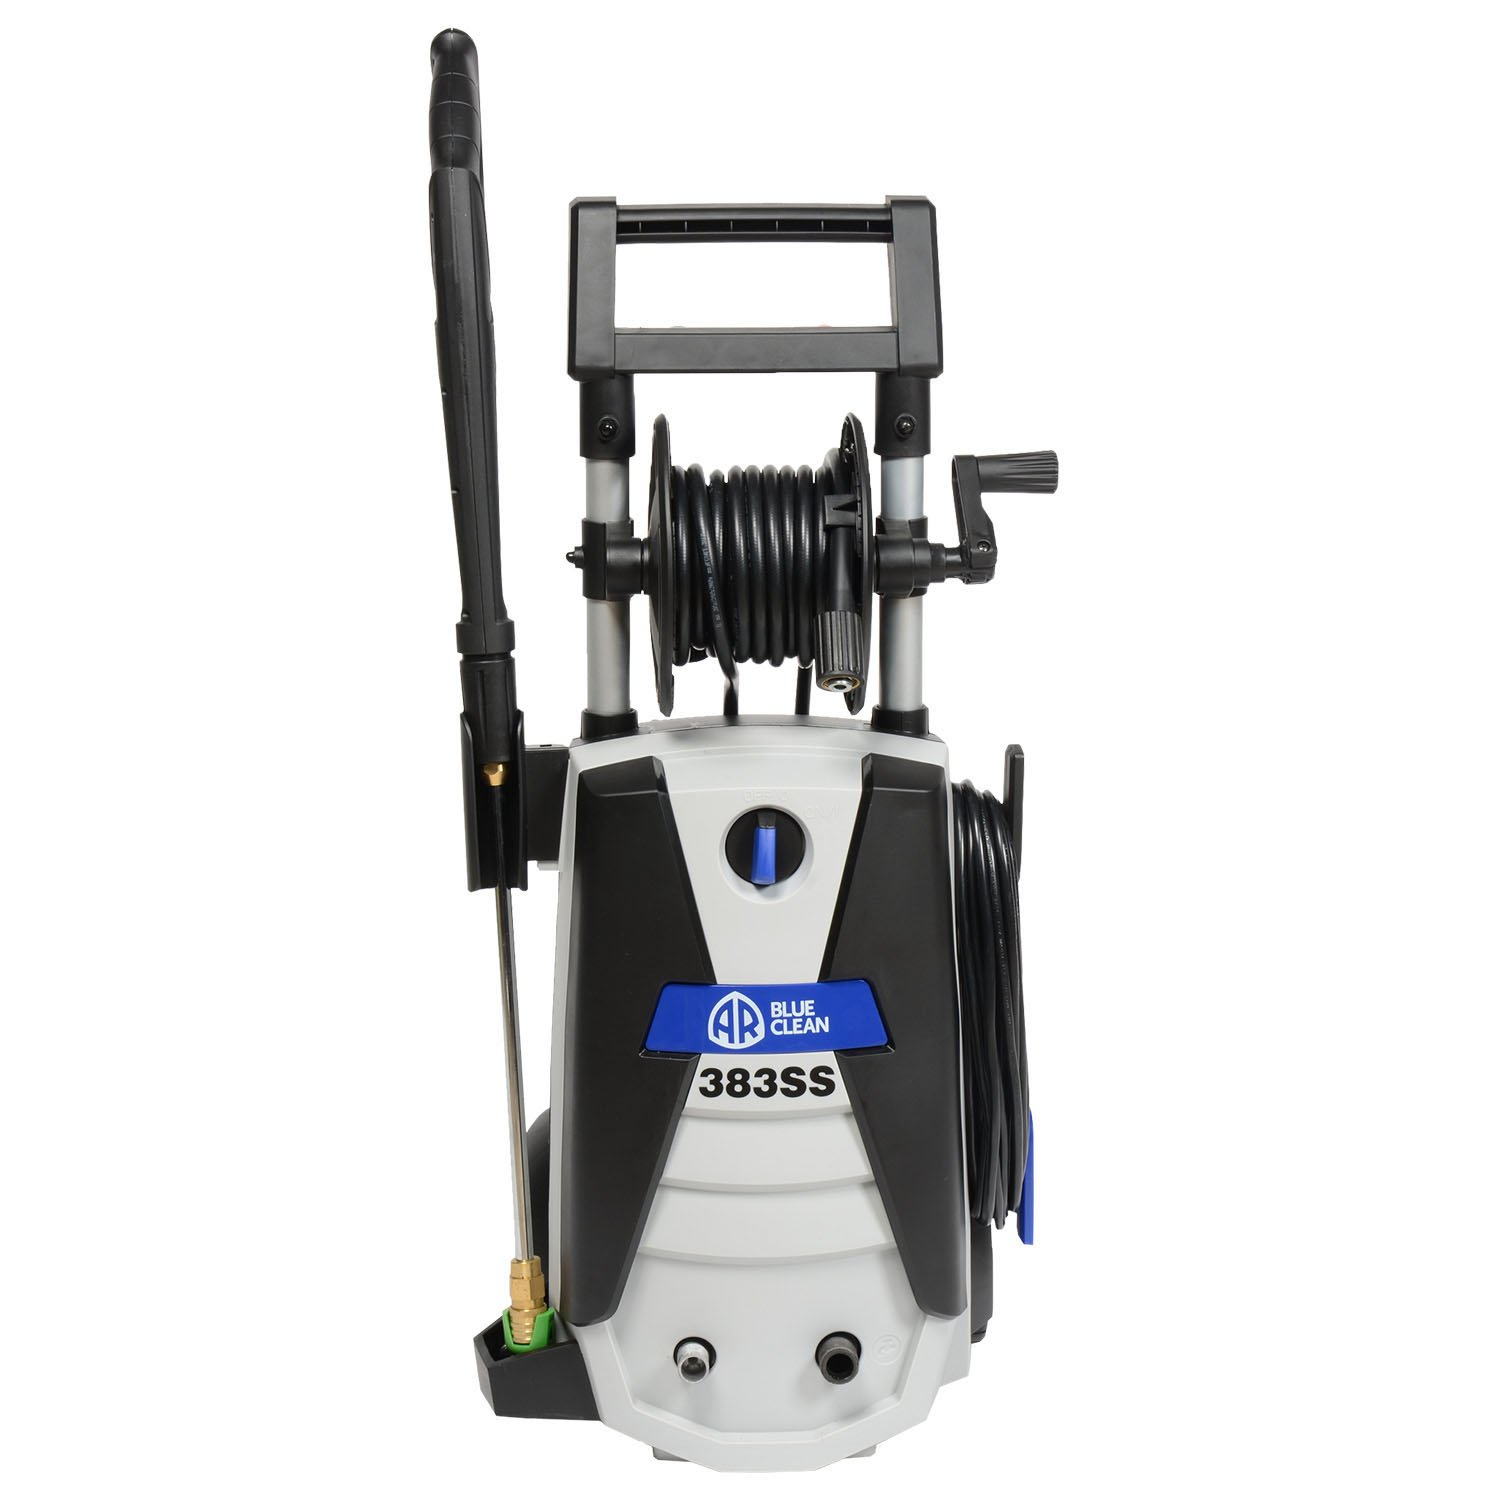 AR Blue Clean AR383SS Electric Pressure Washer Black Friday Deals